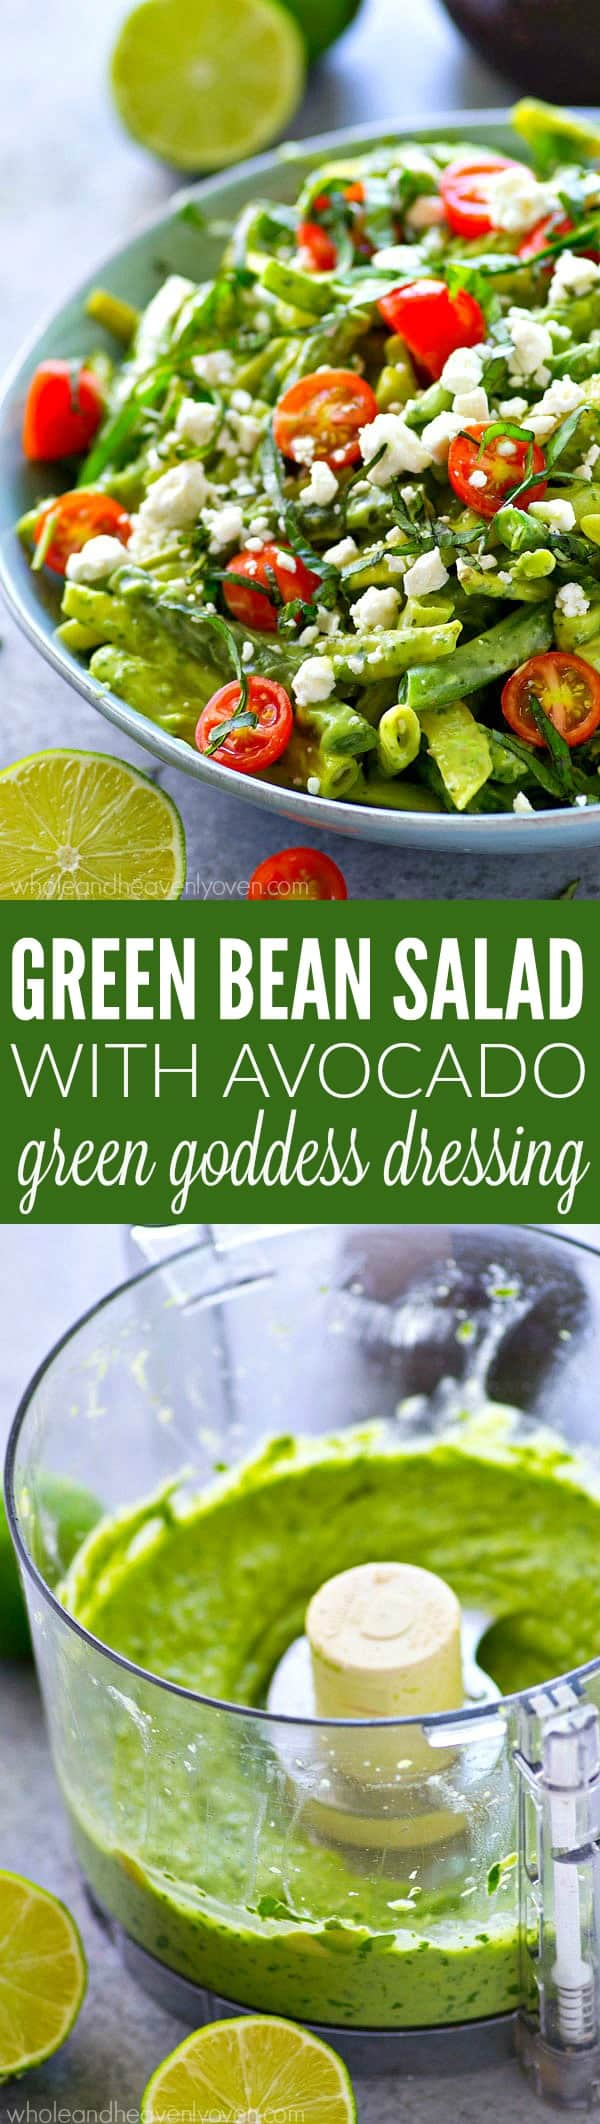 Make good use of those farmer's market green beans with this incredible green bean salad that's packed with cherry tomatoes, crumbly feta, and an insanely-flavorful avocado green goddess dressing.